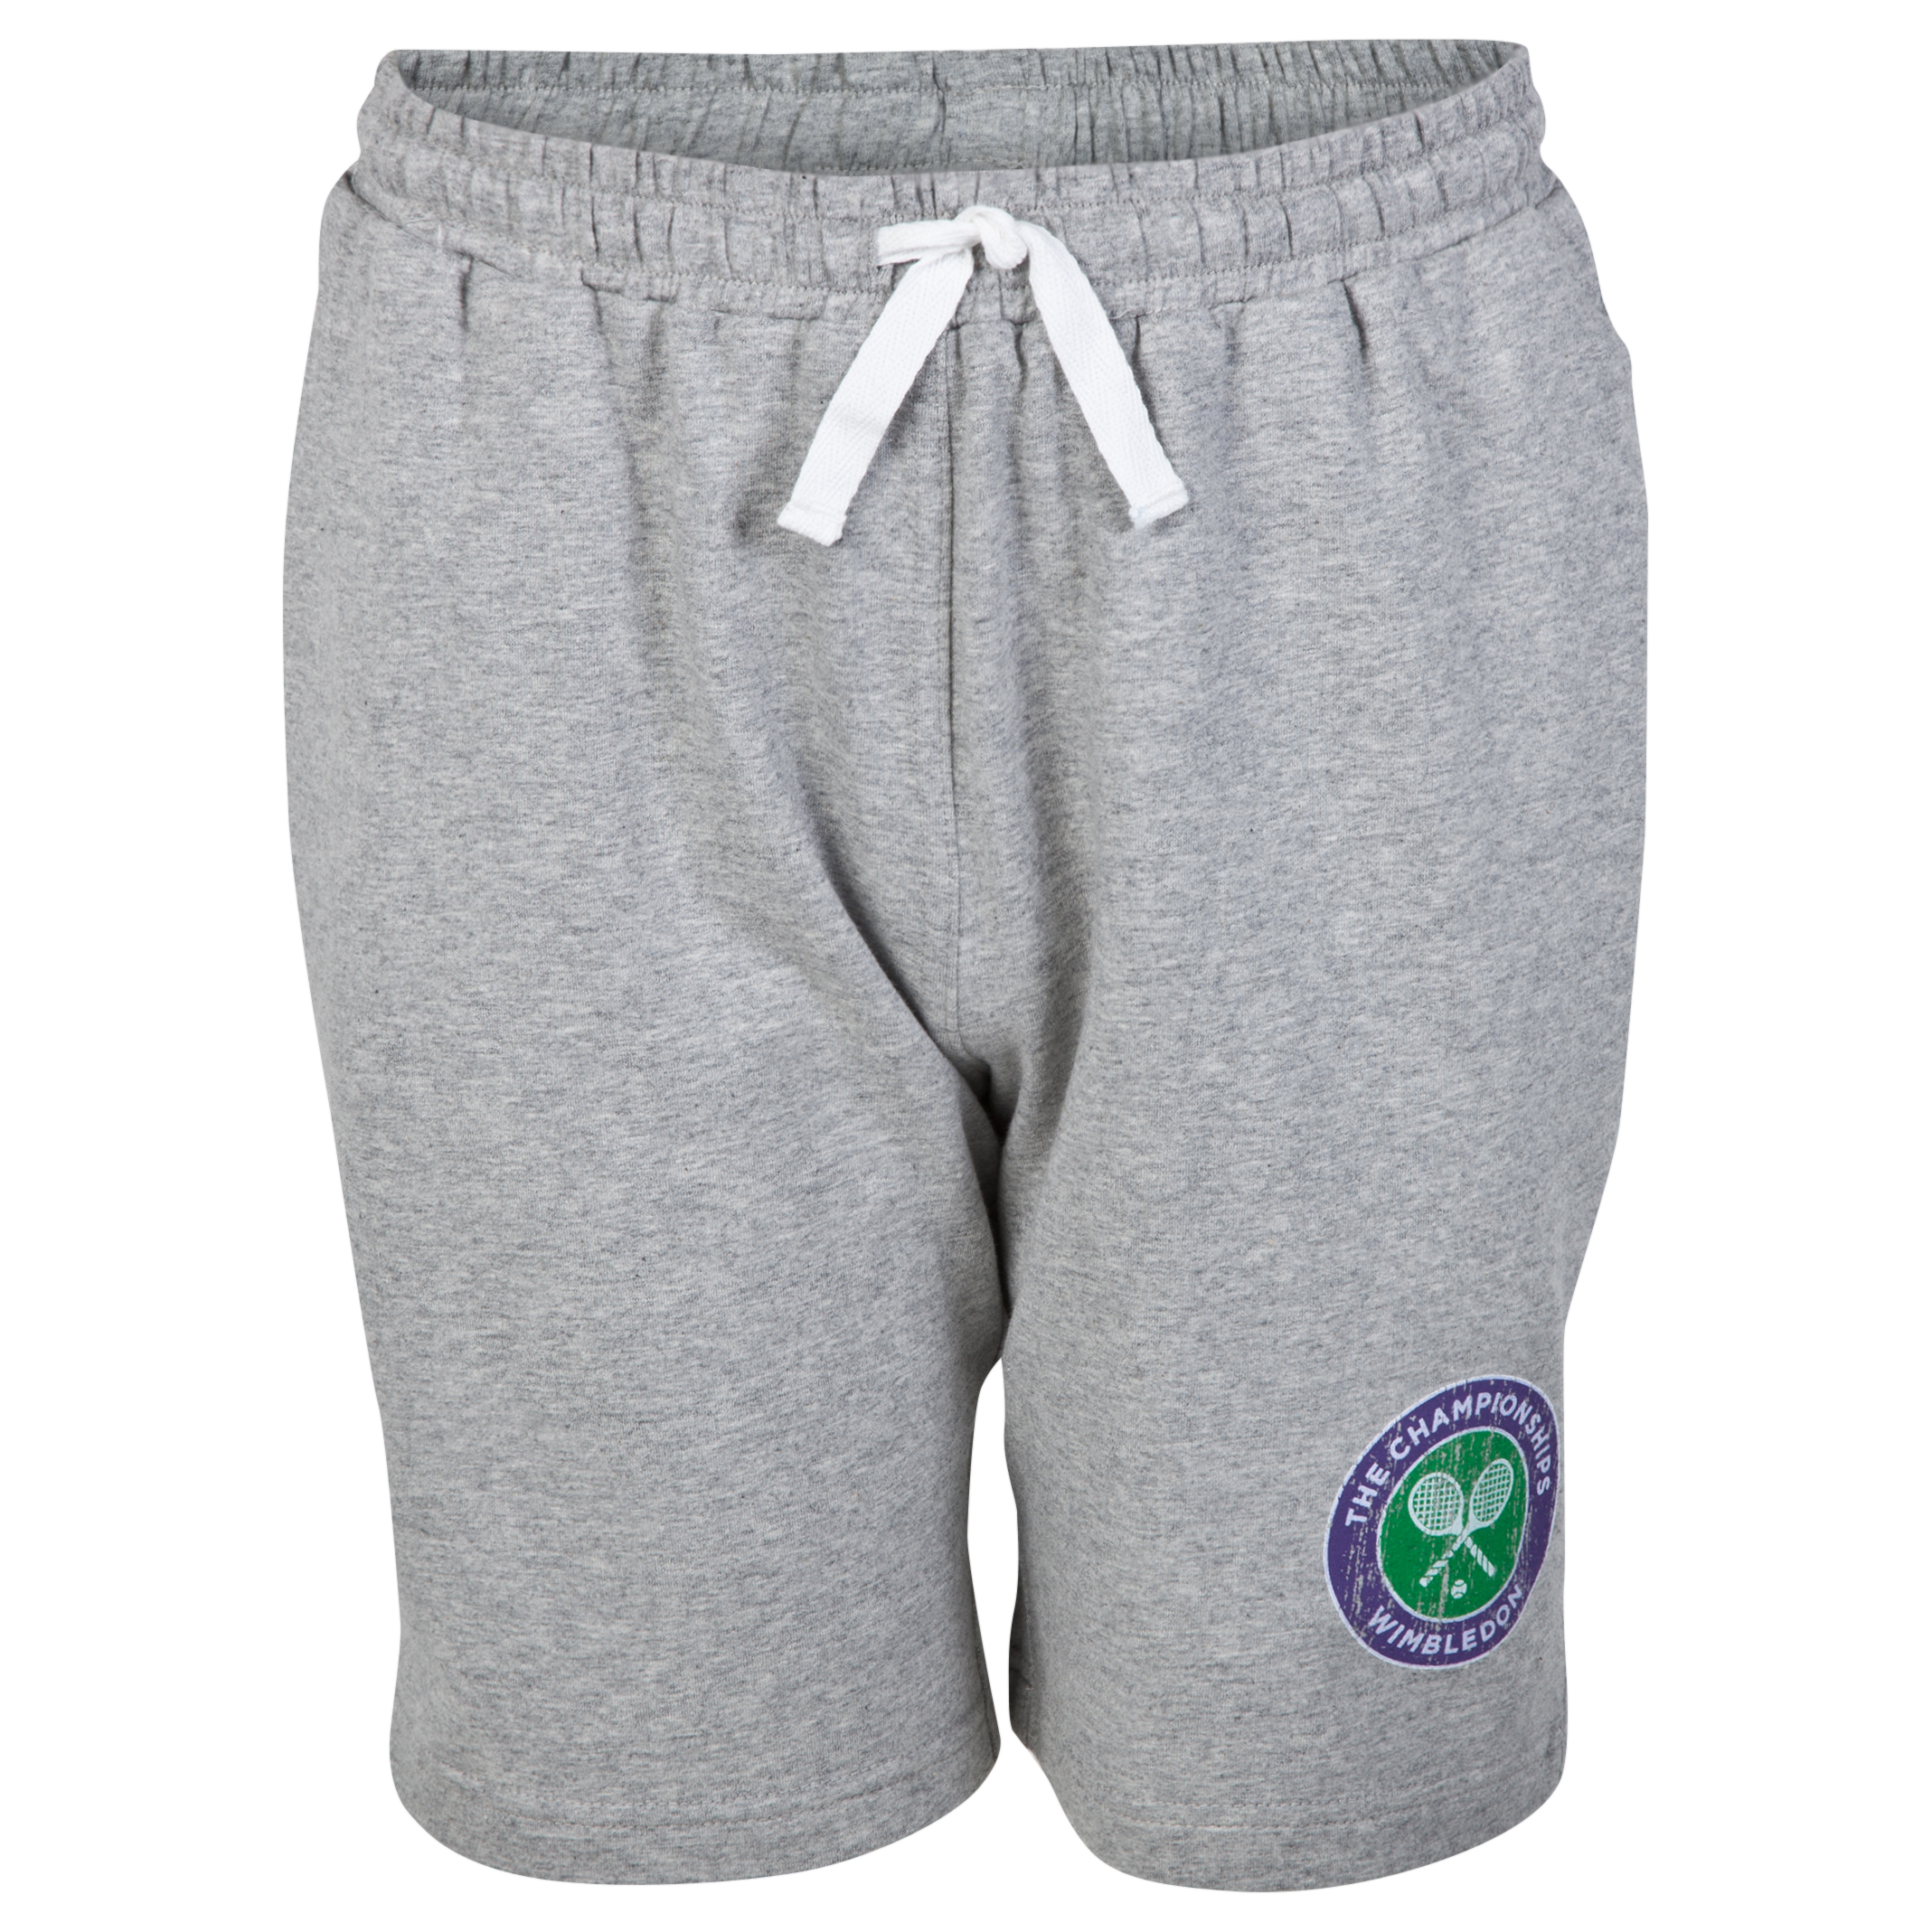 Wimbledon Casual Jersey Shorts - Boys